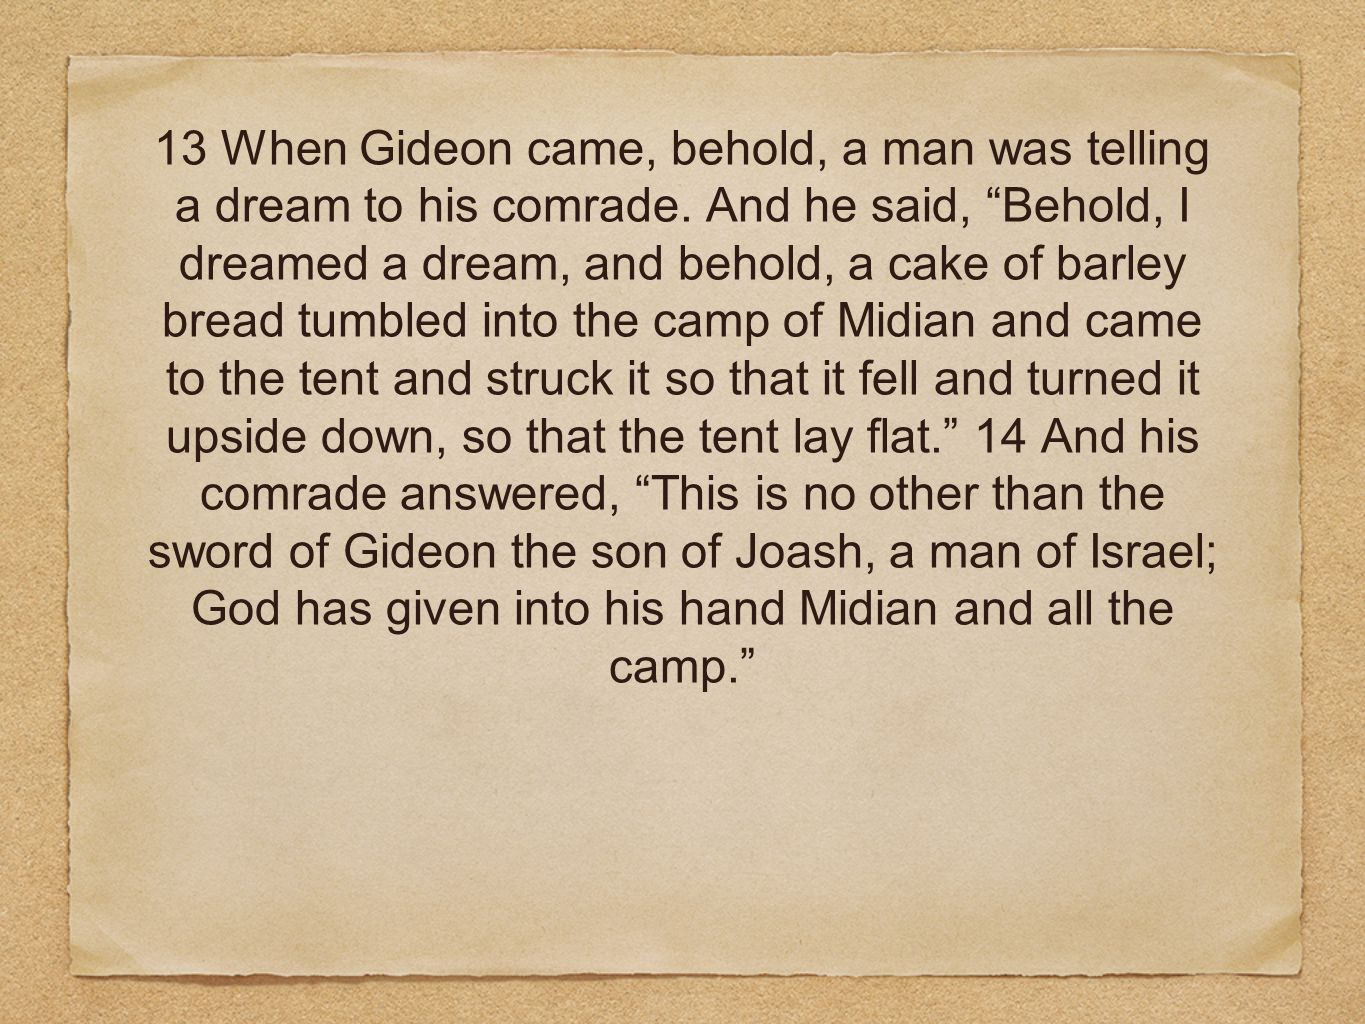 13 When Gideon came, behold, a man was telling a dream to his comrade.